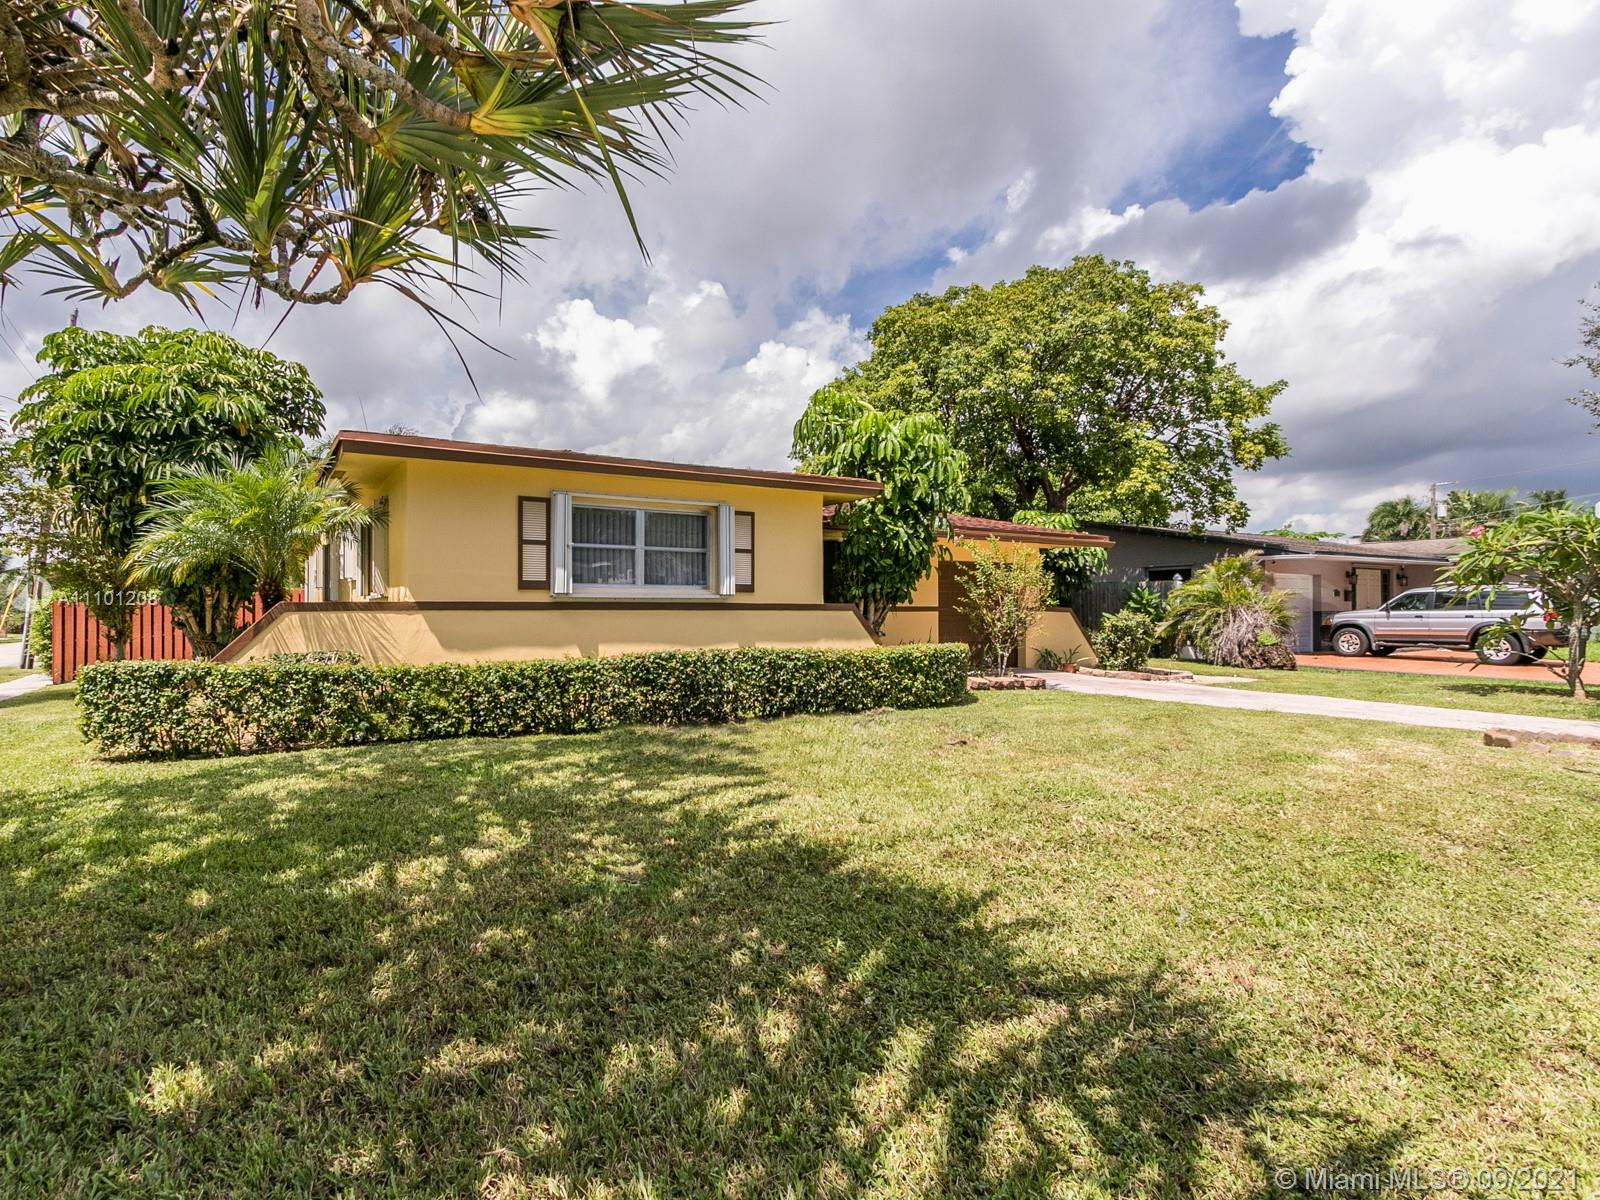 Hollywood Little Ranches, 700 N 28th Ave, Hollywood, Florida 33020